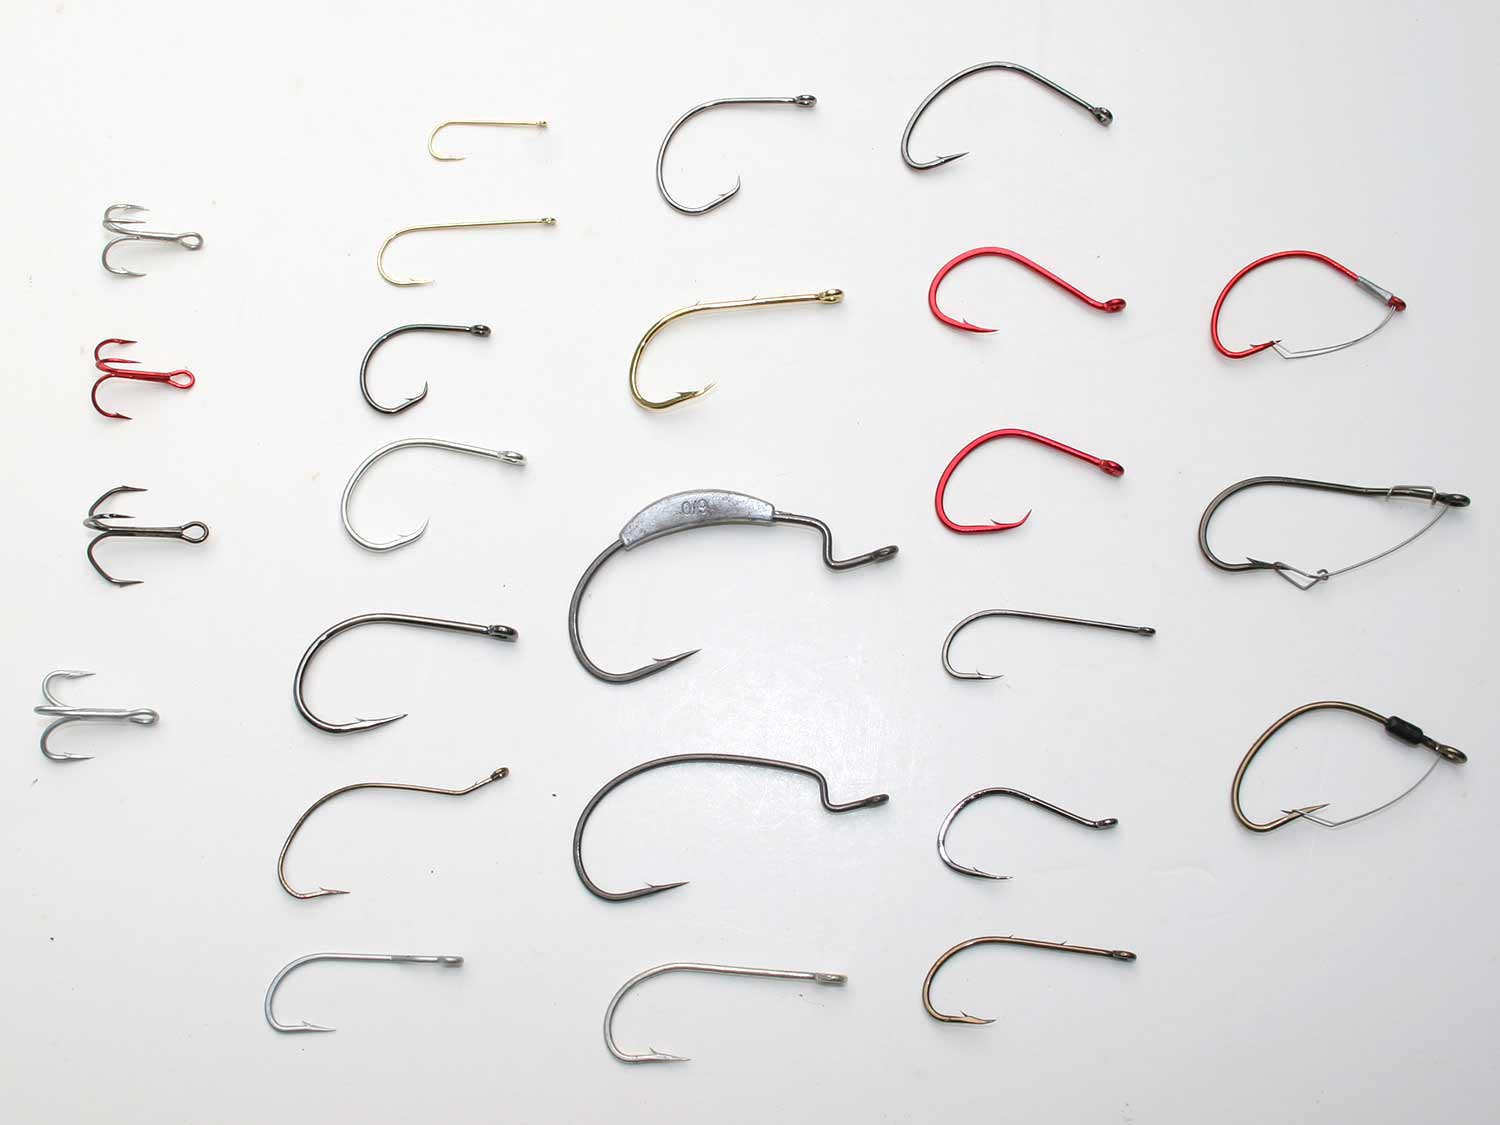 How to Choose the Right Fishing Hook the First Time